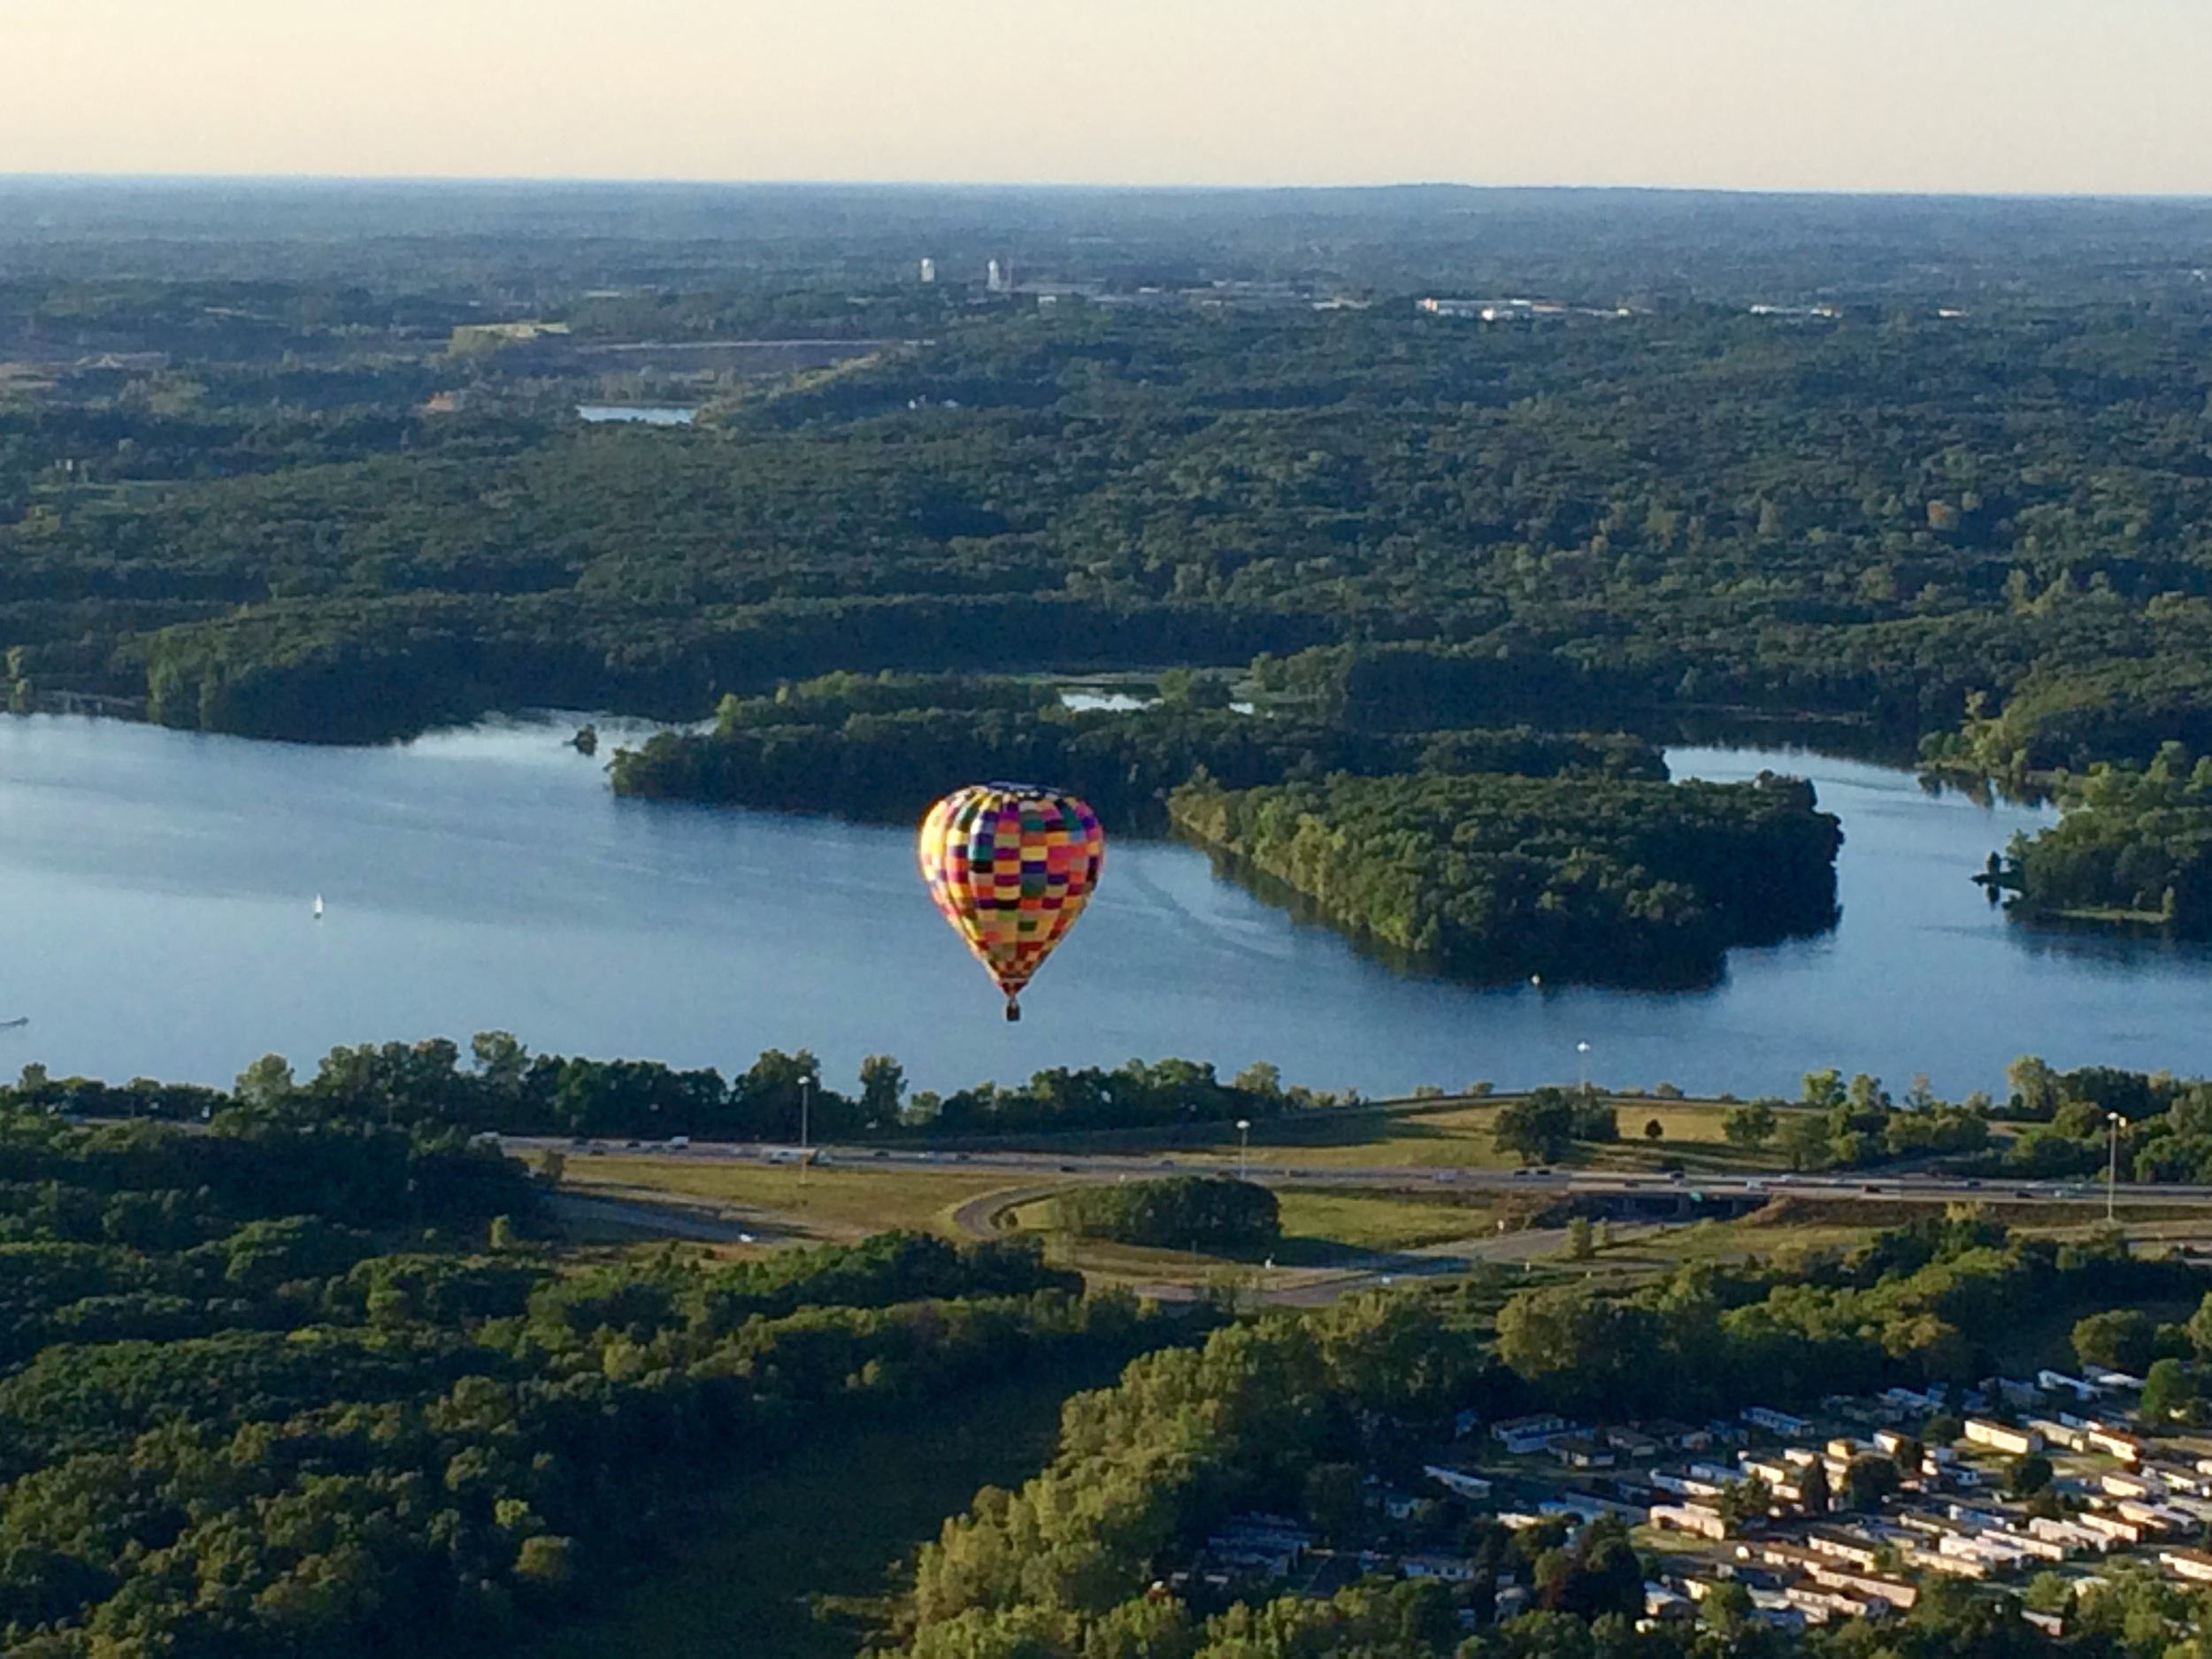 Bit of a view of Kent Lake...and so nice of a companion balloon to provide context.